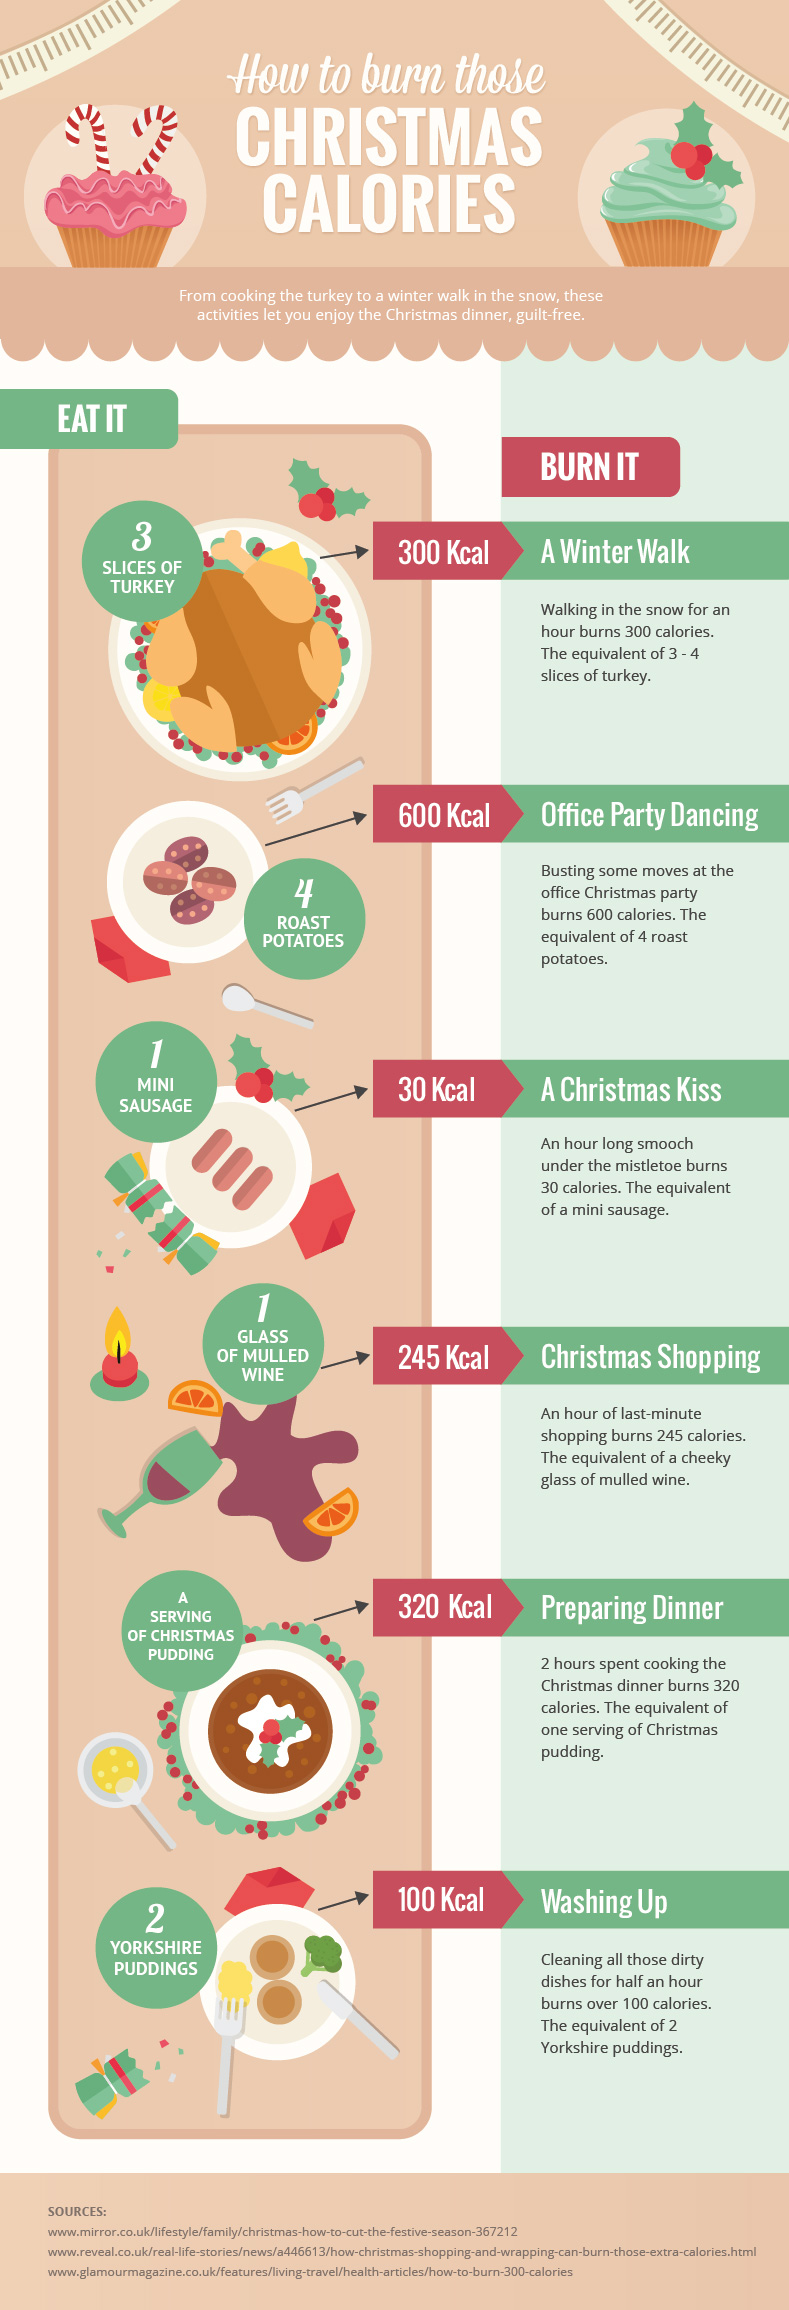 Burning Christmas Calories